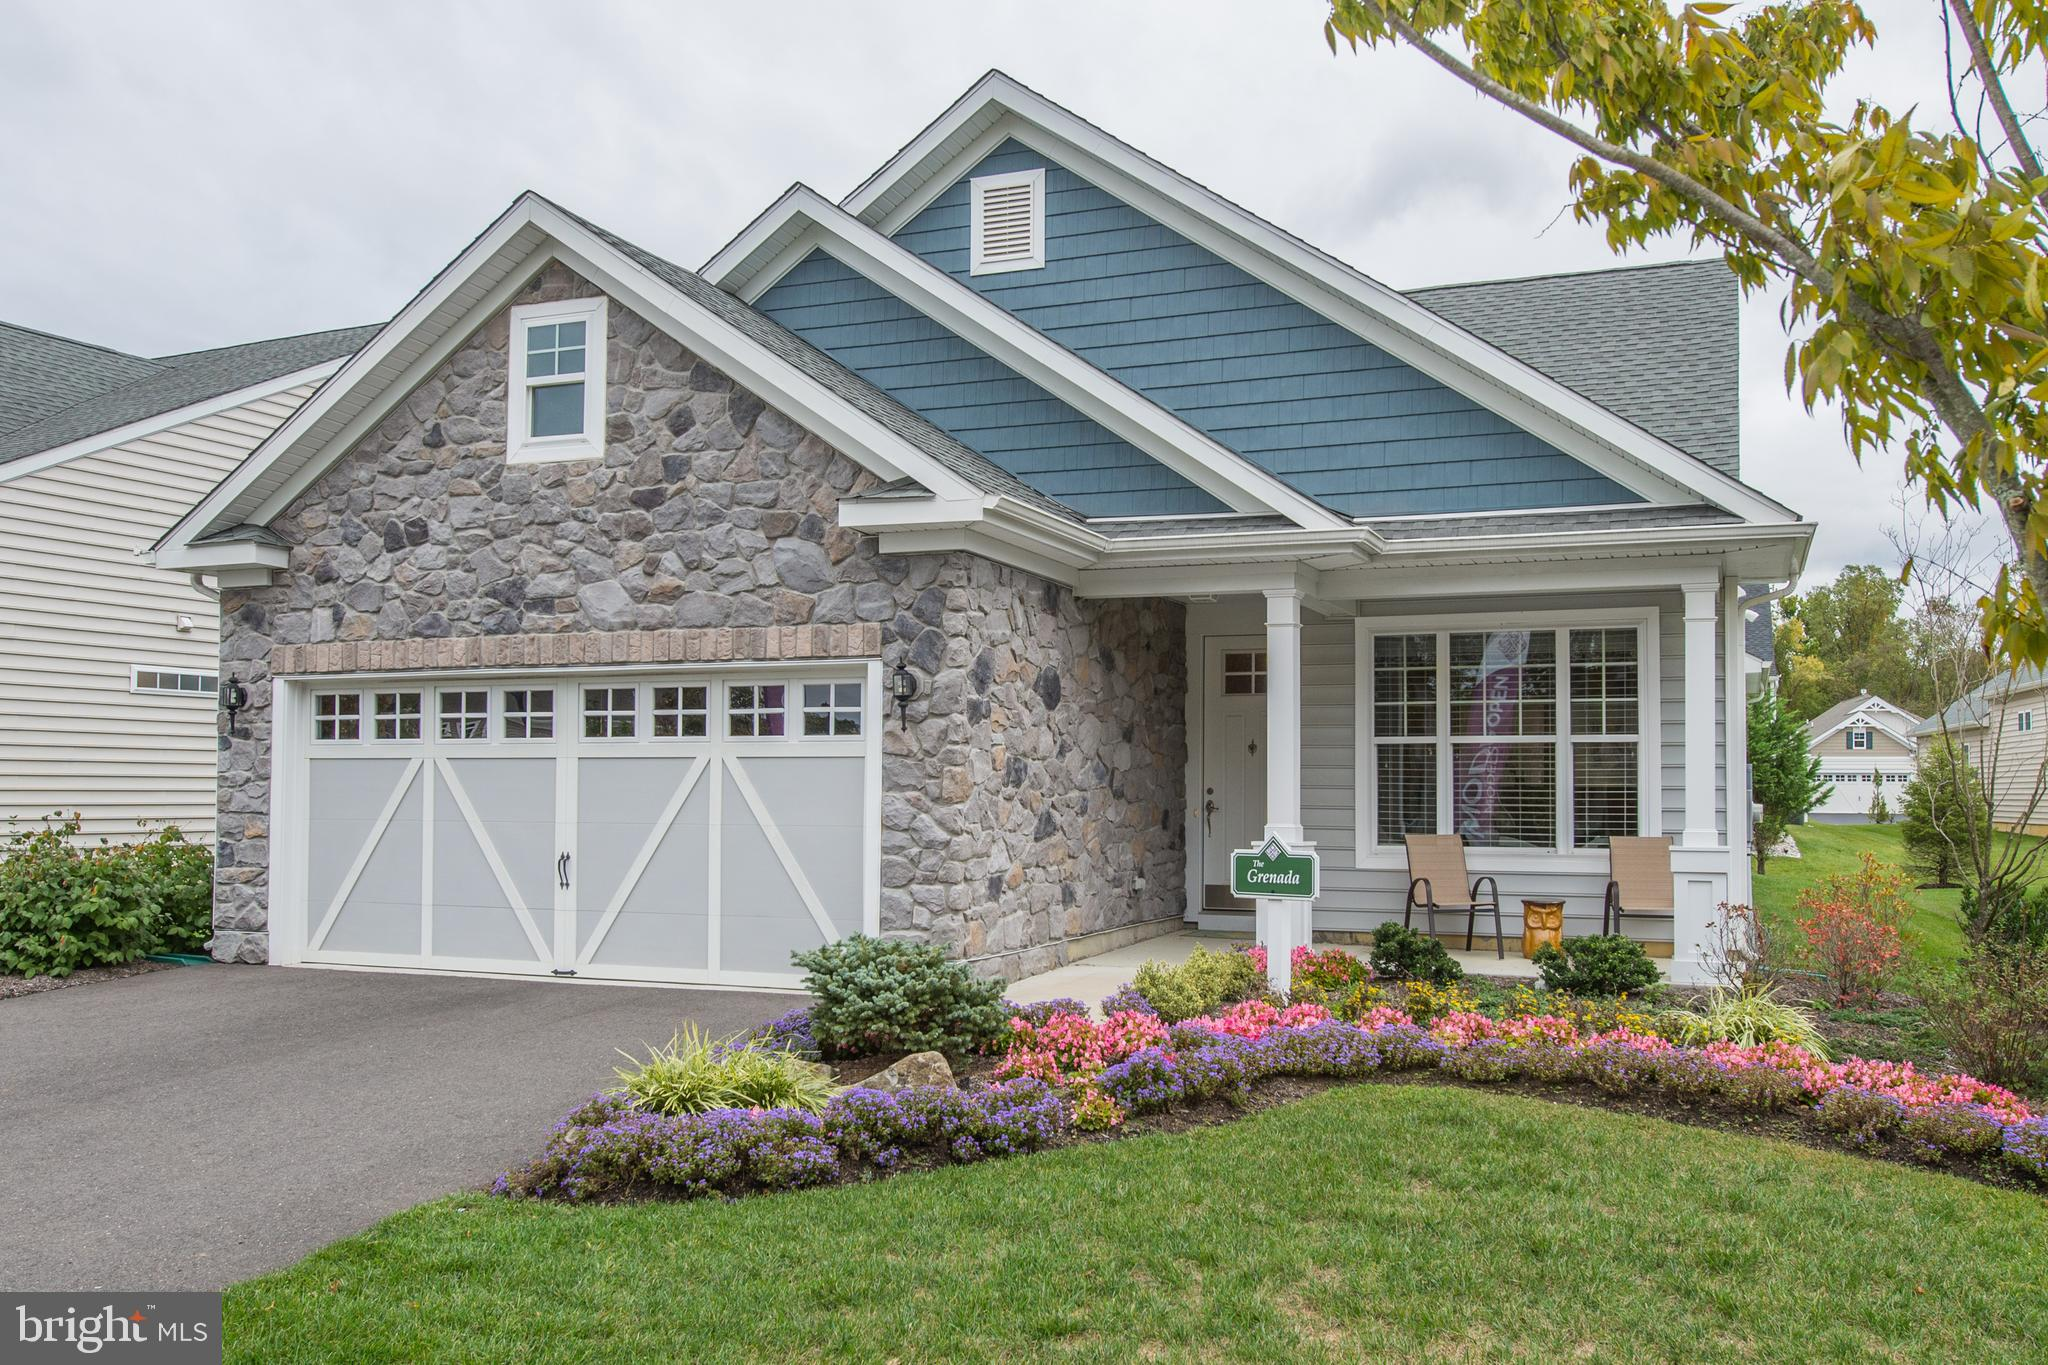 Welcome a new active adult 55+ community on Maryland's Chesapeake Bay, offering island-living with n